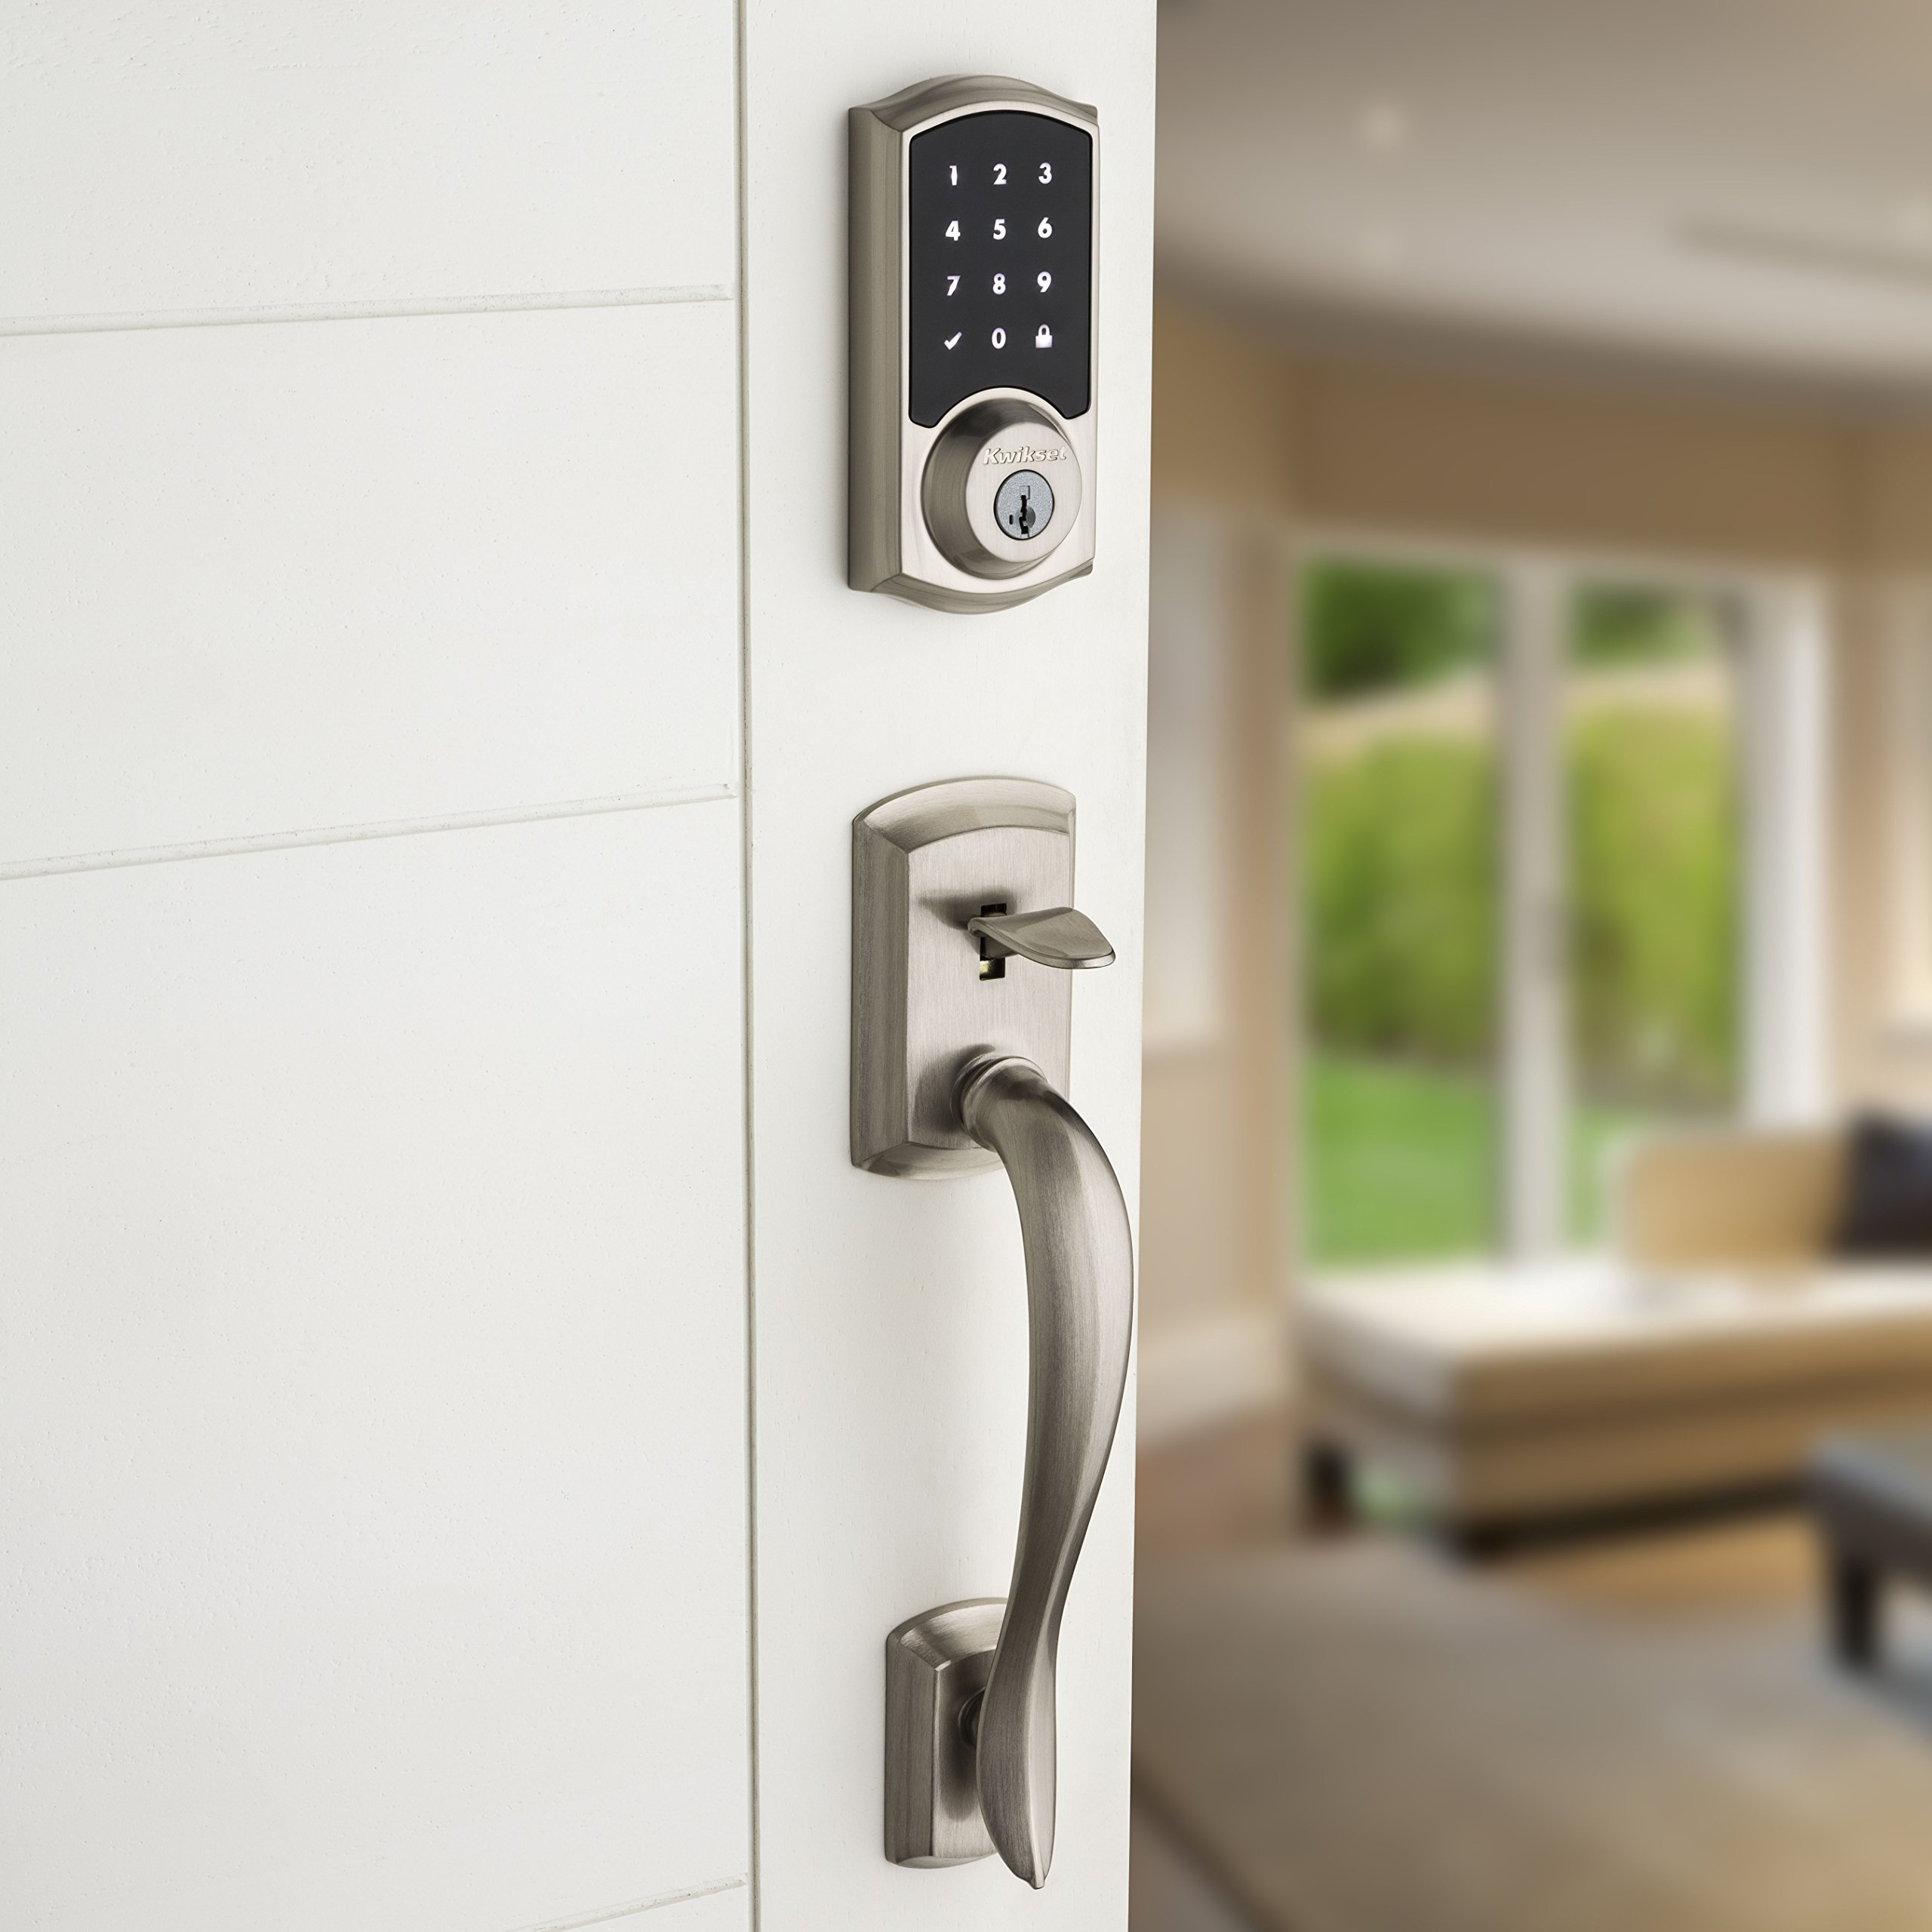 Kwikset 99160-008 SmartCode ZigBee Touchscreen Smart Lock works with Echo Plus & Alexa, featuring SmartKey, Satin Nickel by Kwikset (Image #10)